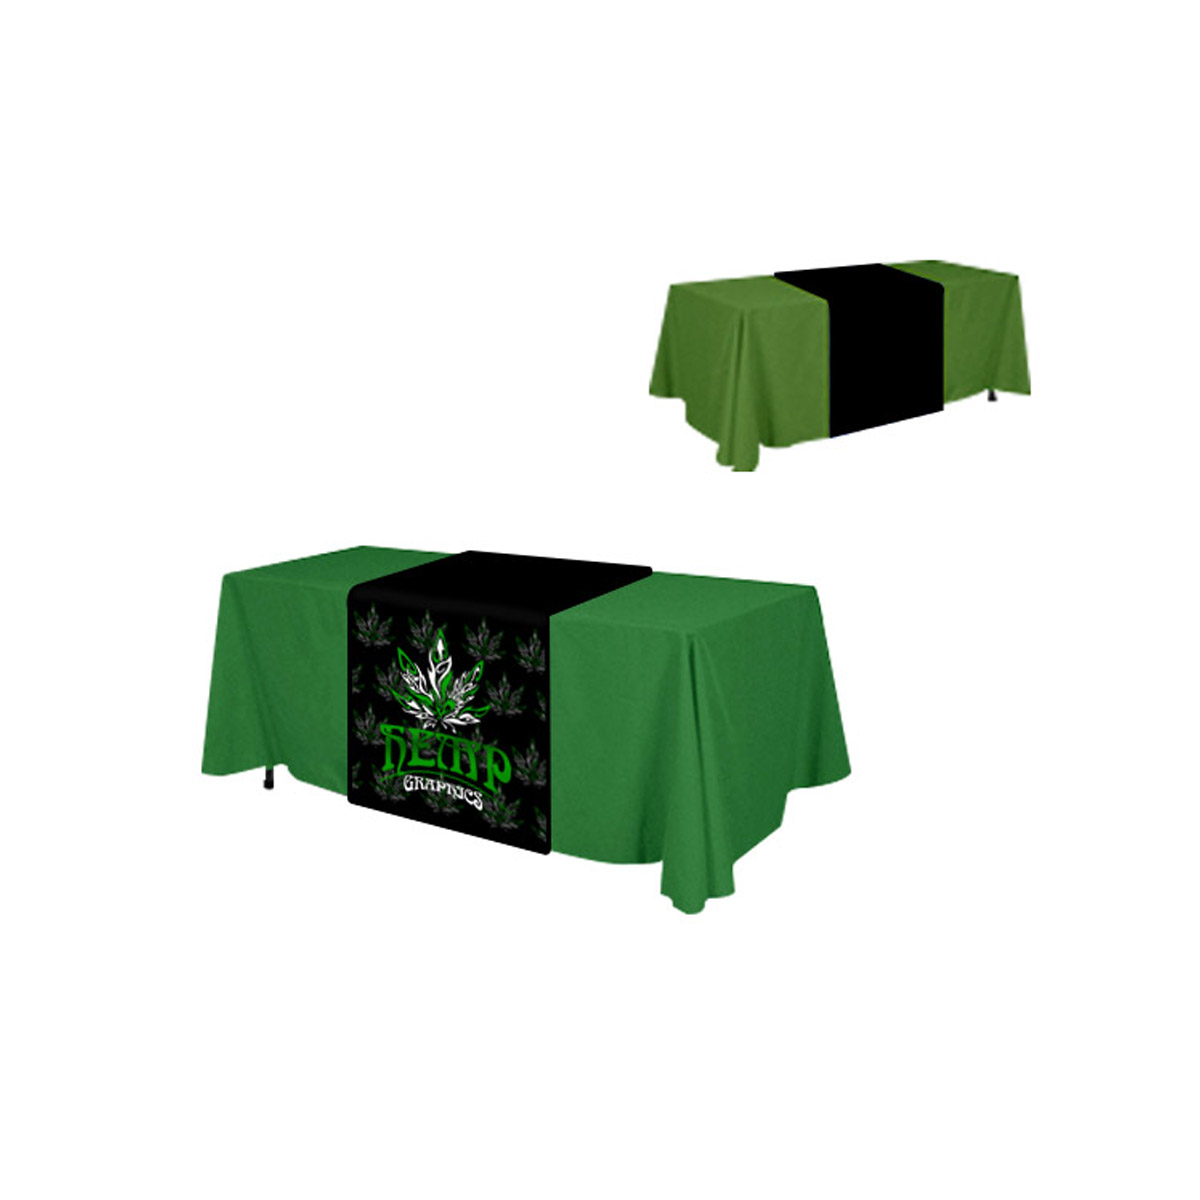 Table Runner Amp Solid Color Table Throw Hemp Graphics